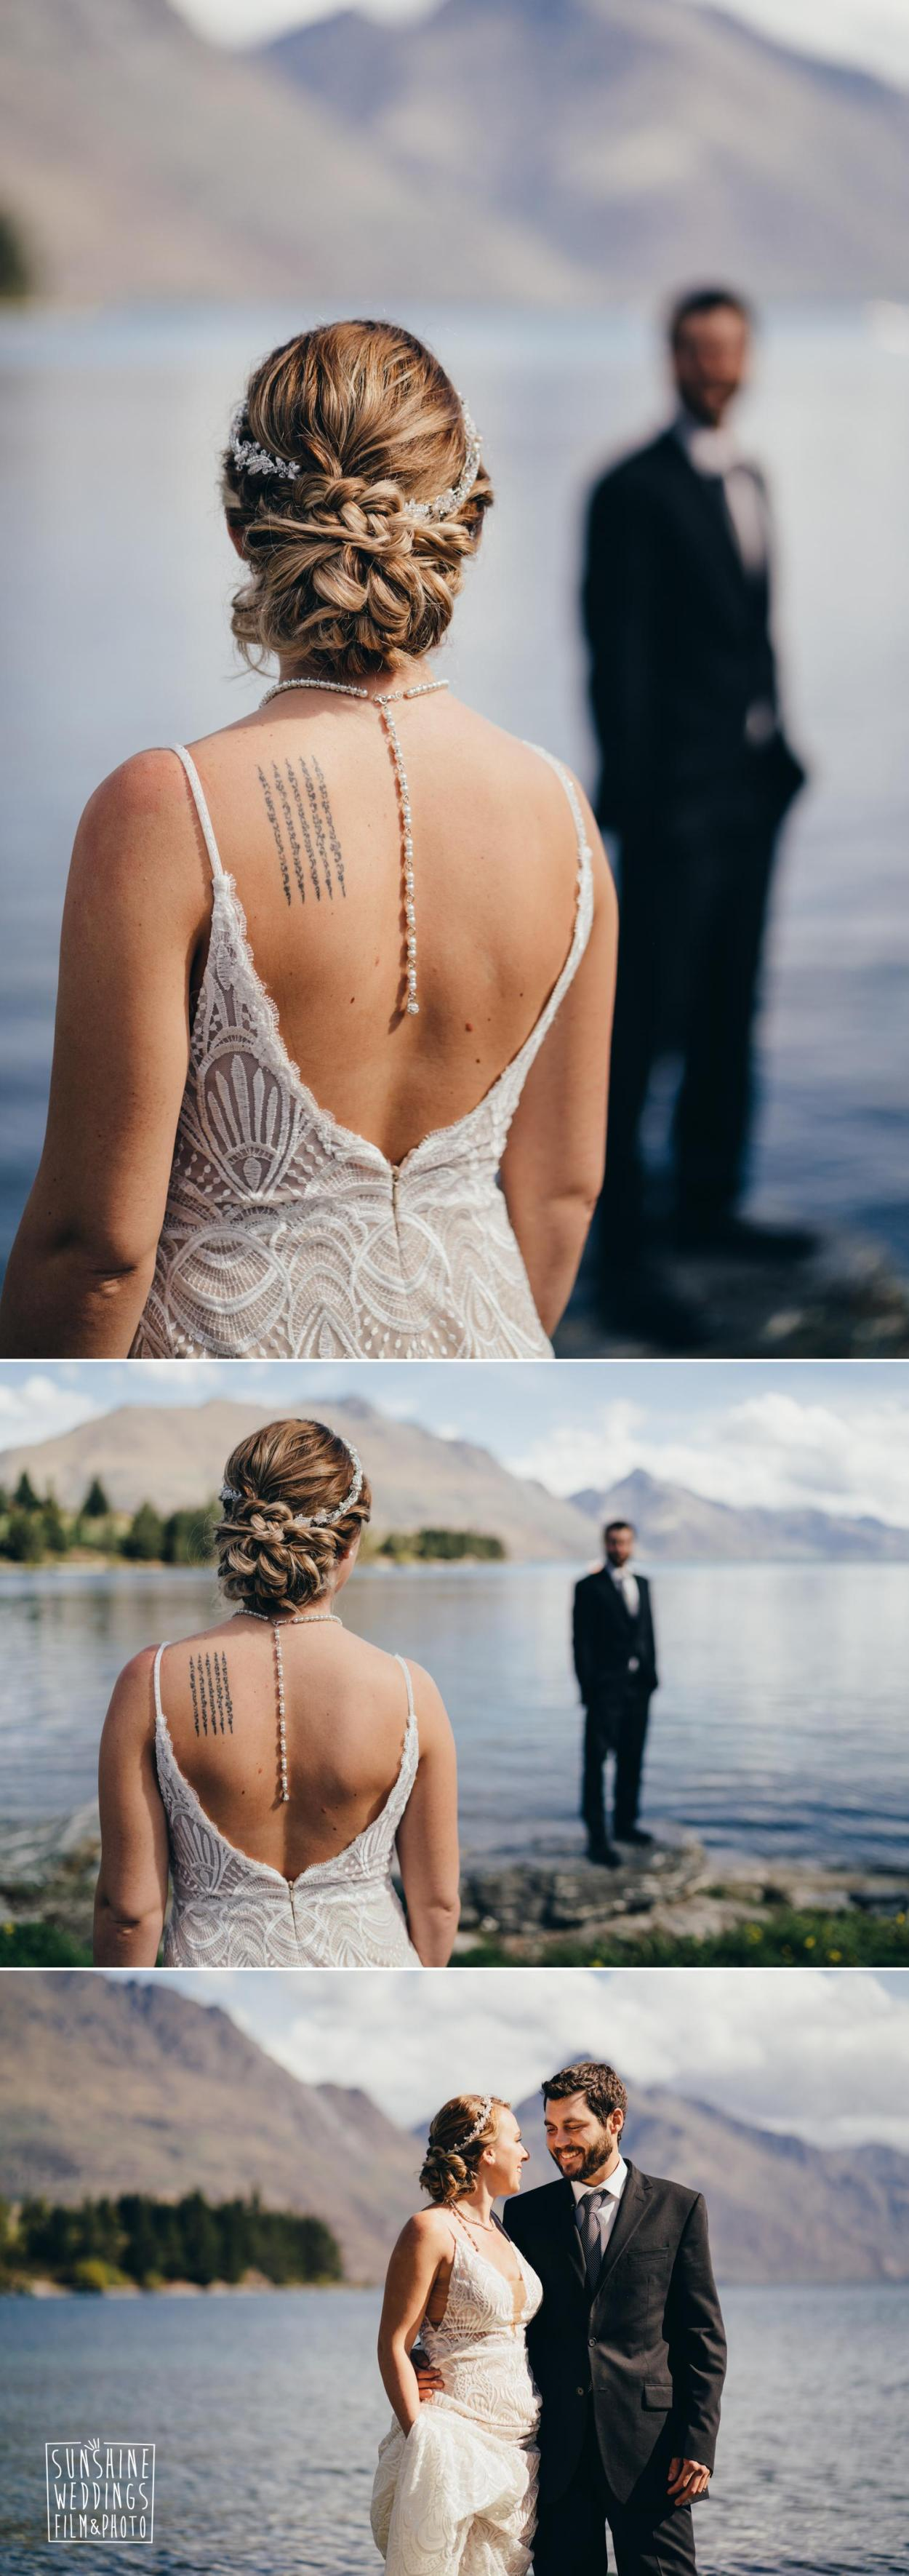 Queenstown lake wedding planner